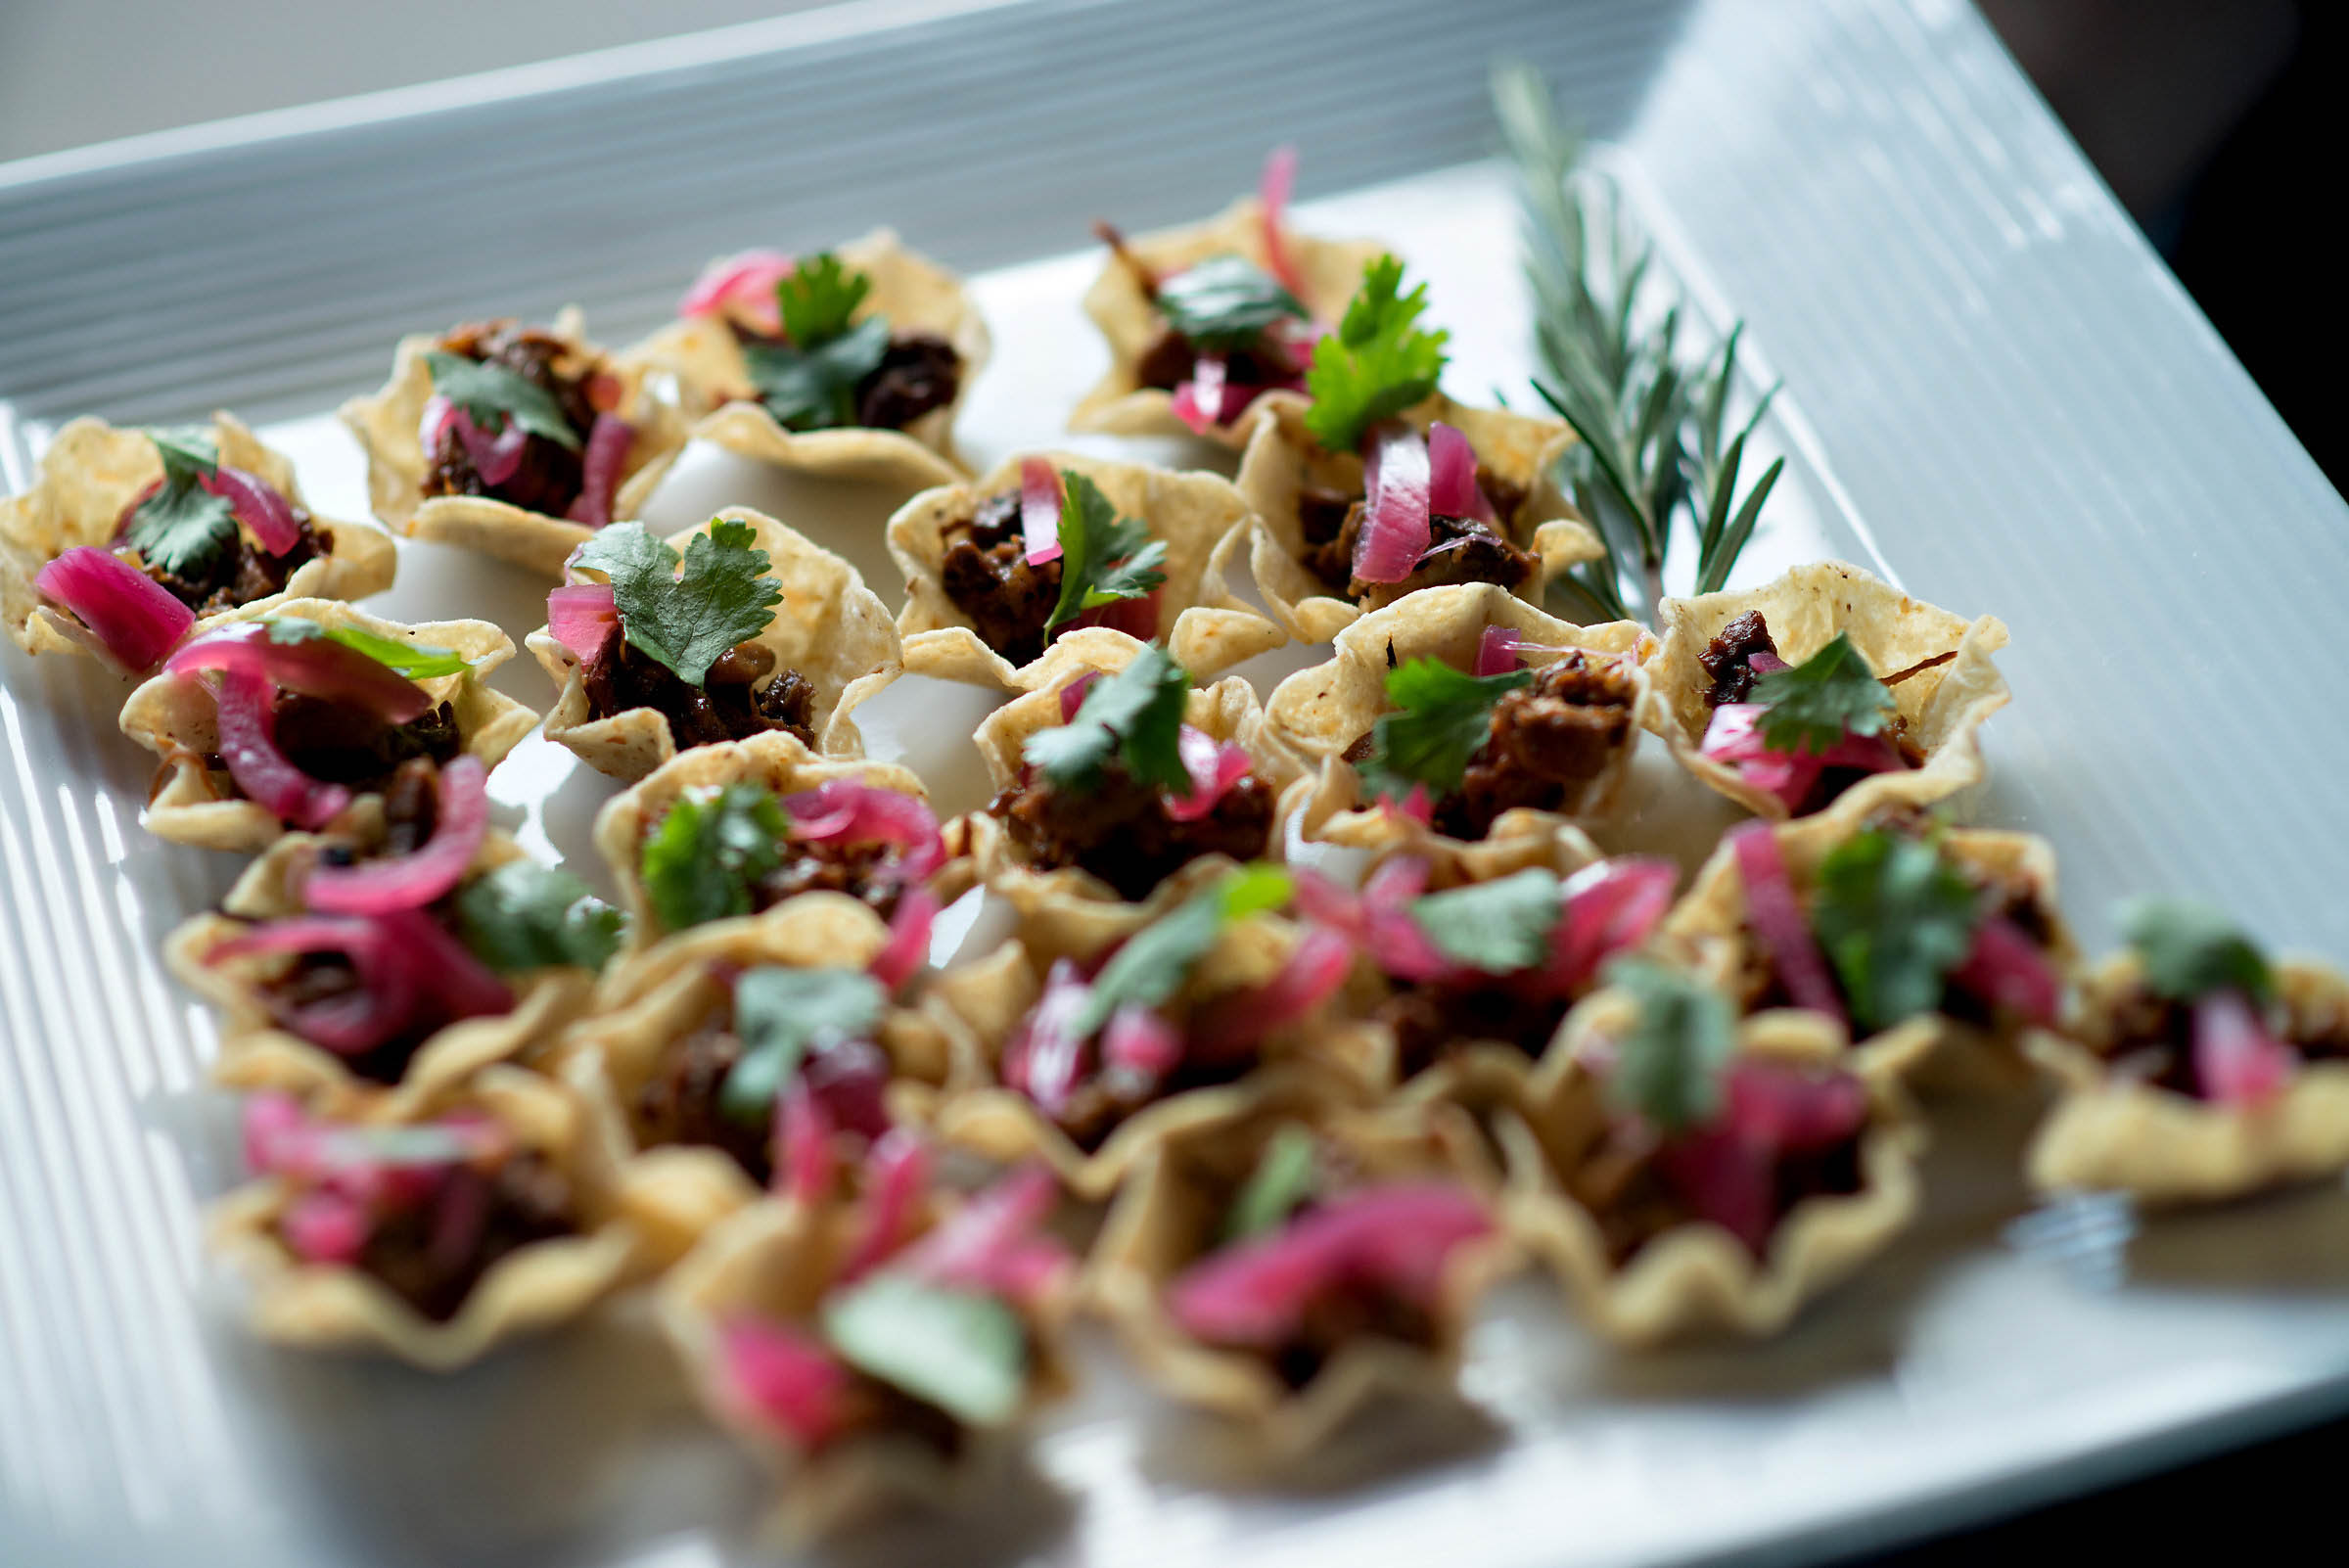 catering hors d' oeuvres monique marie